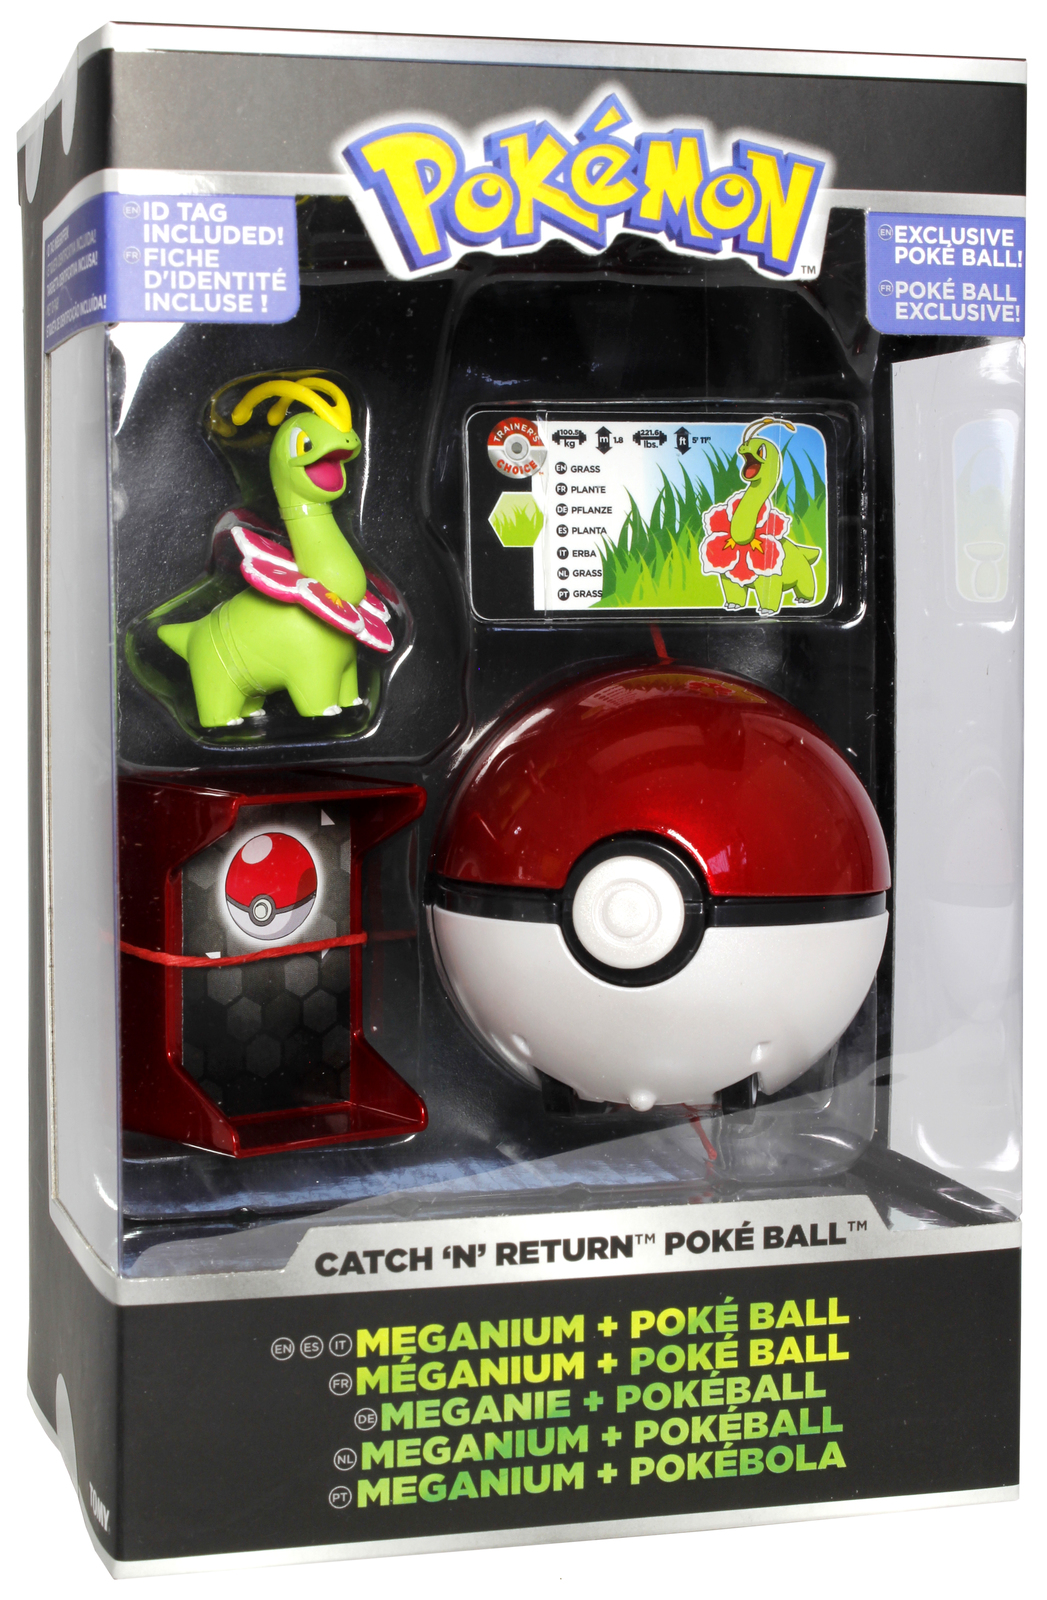 Pokemon: Pokémon Catch 'n Return - Meganium Poké Ball image